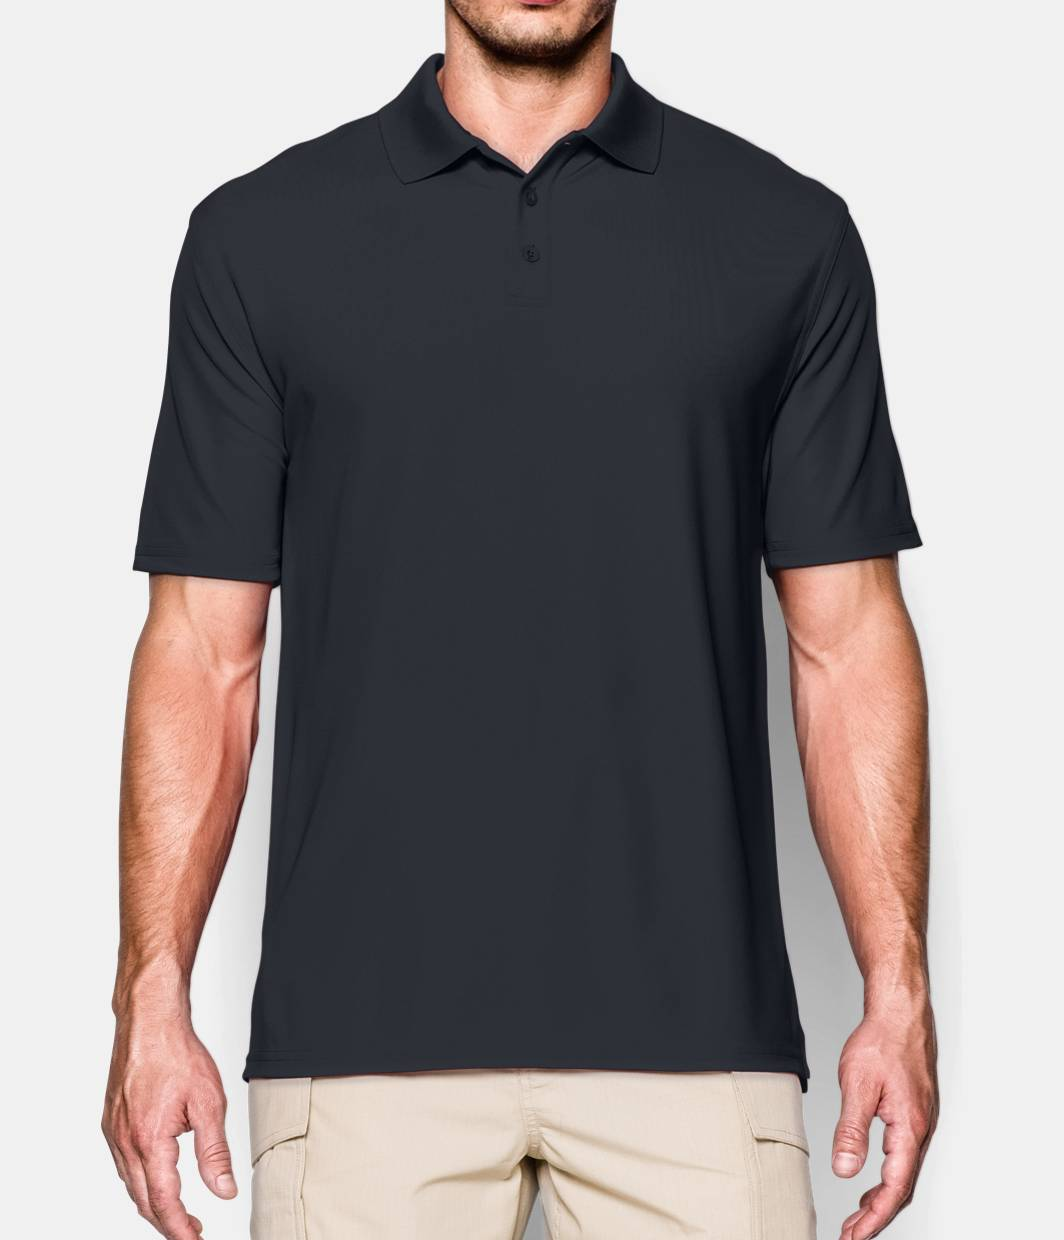 Under Armour 1005492 Tactical Range Men's Tactical Short Sleeve Shirt